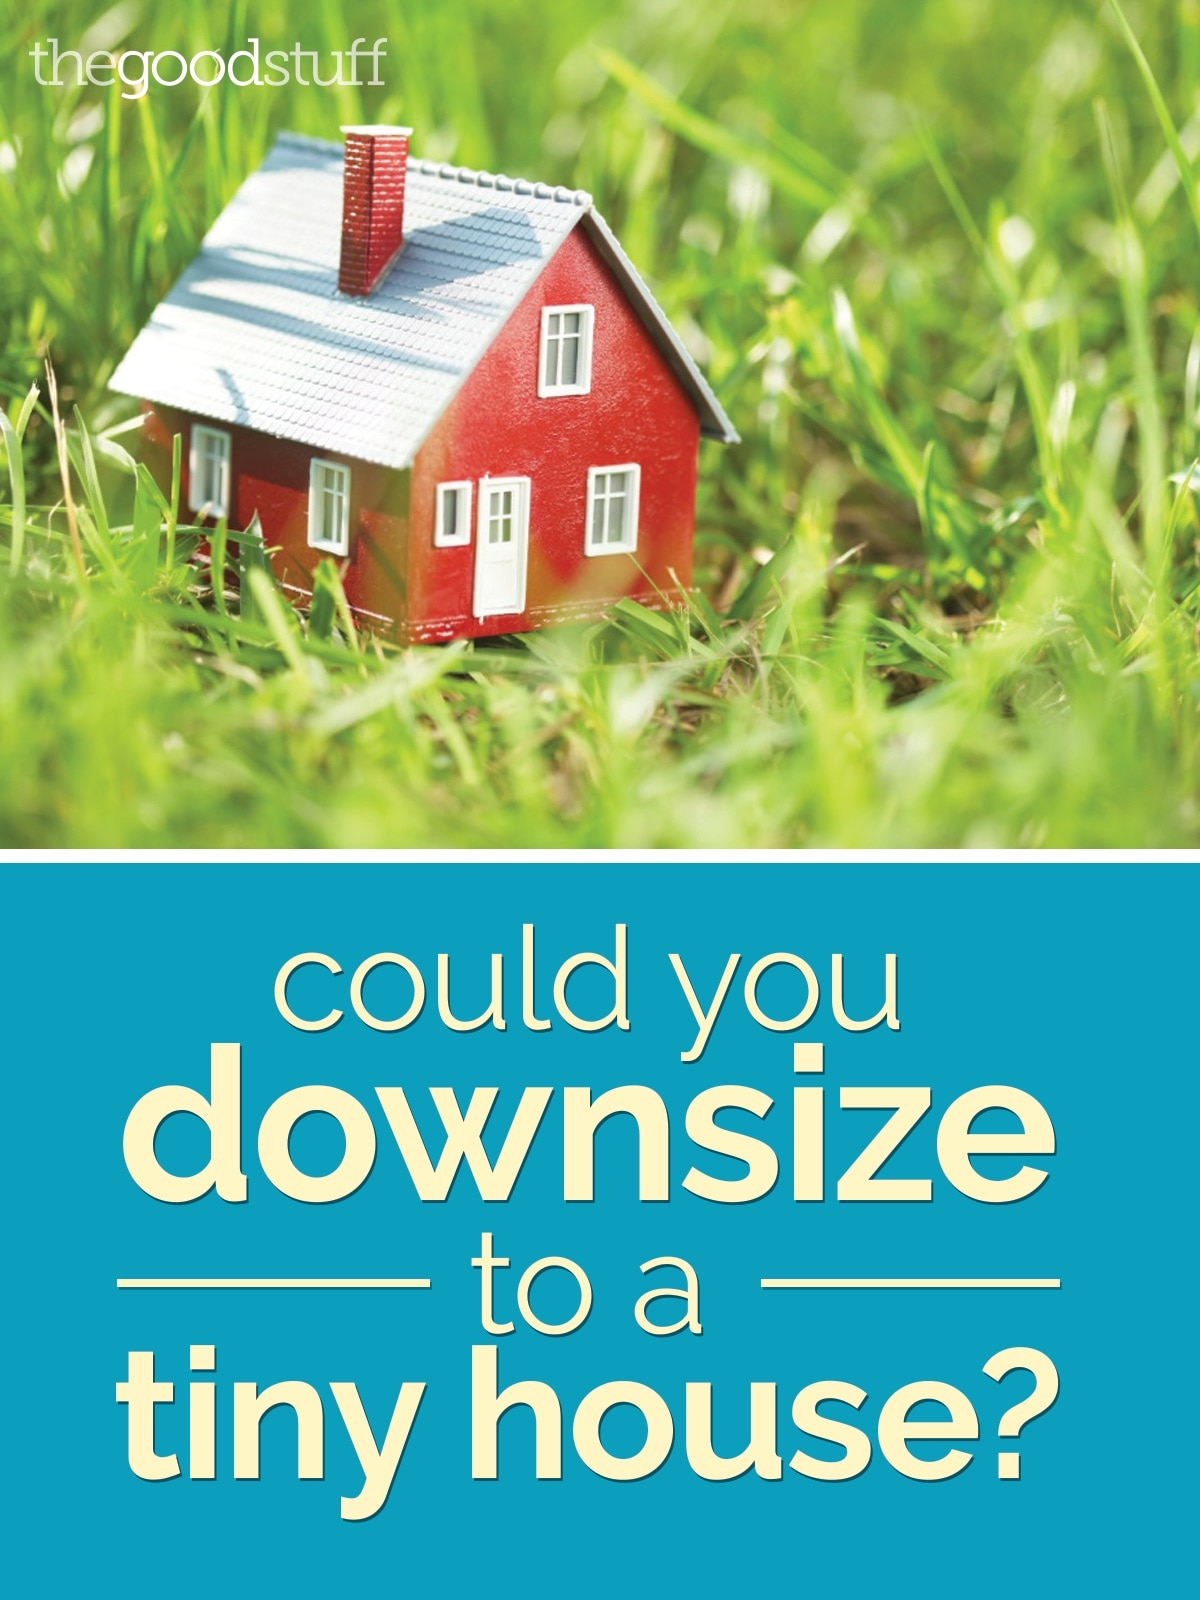 life-downsize-to-a-tiny-house